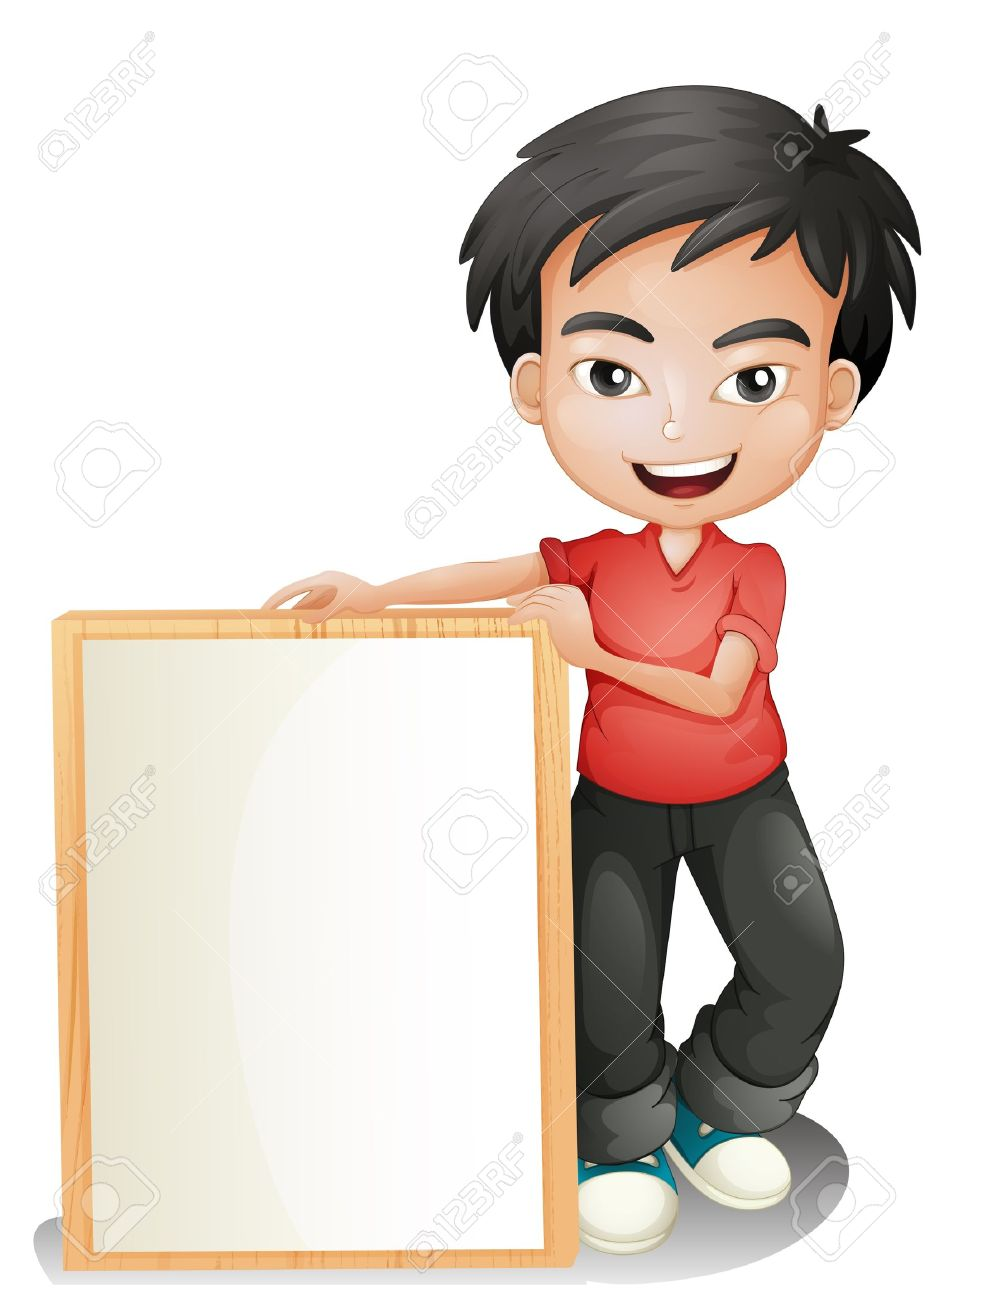 Illustration of a boy holding an empty framed board on a white background Stock Vector - 18610541